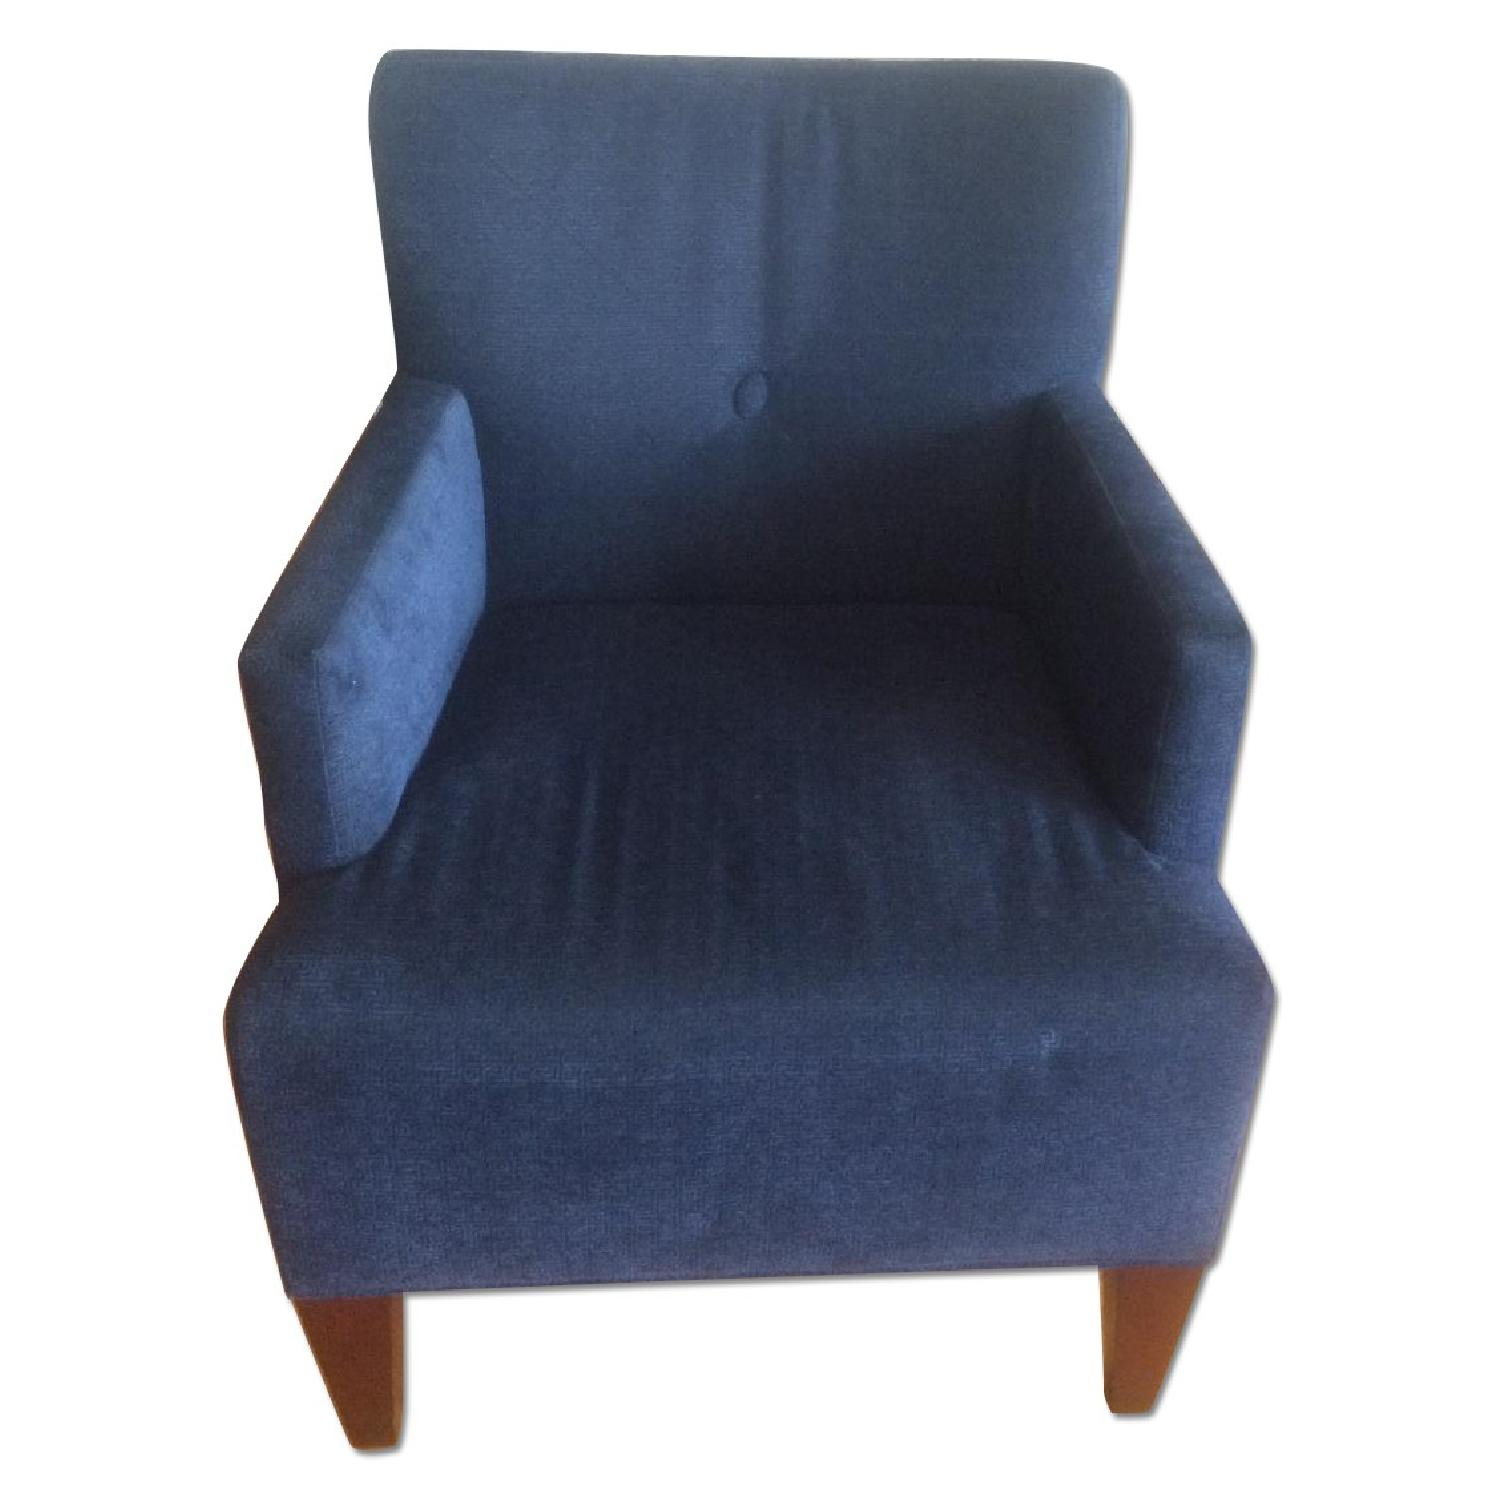 HBF Brentwood Collection Blue Navy Chair/Armchair